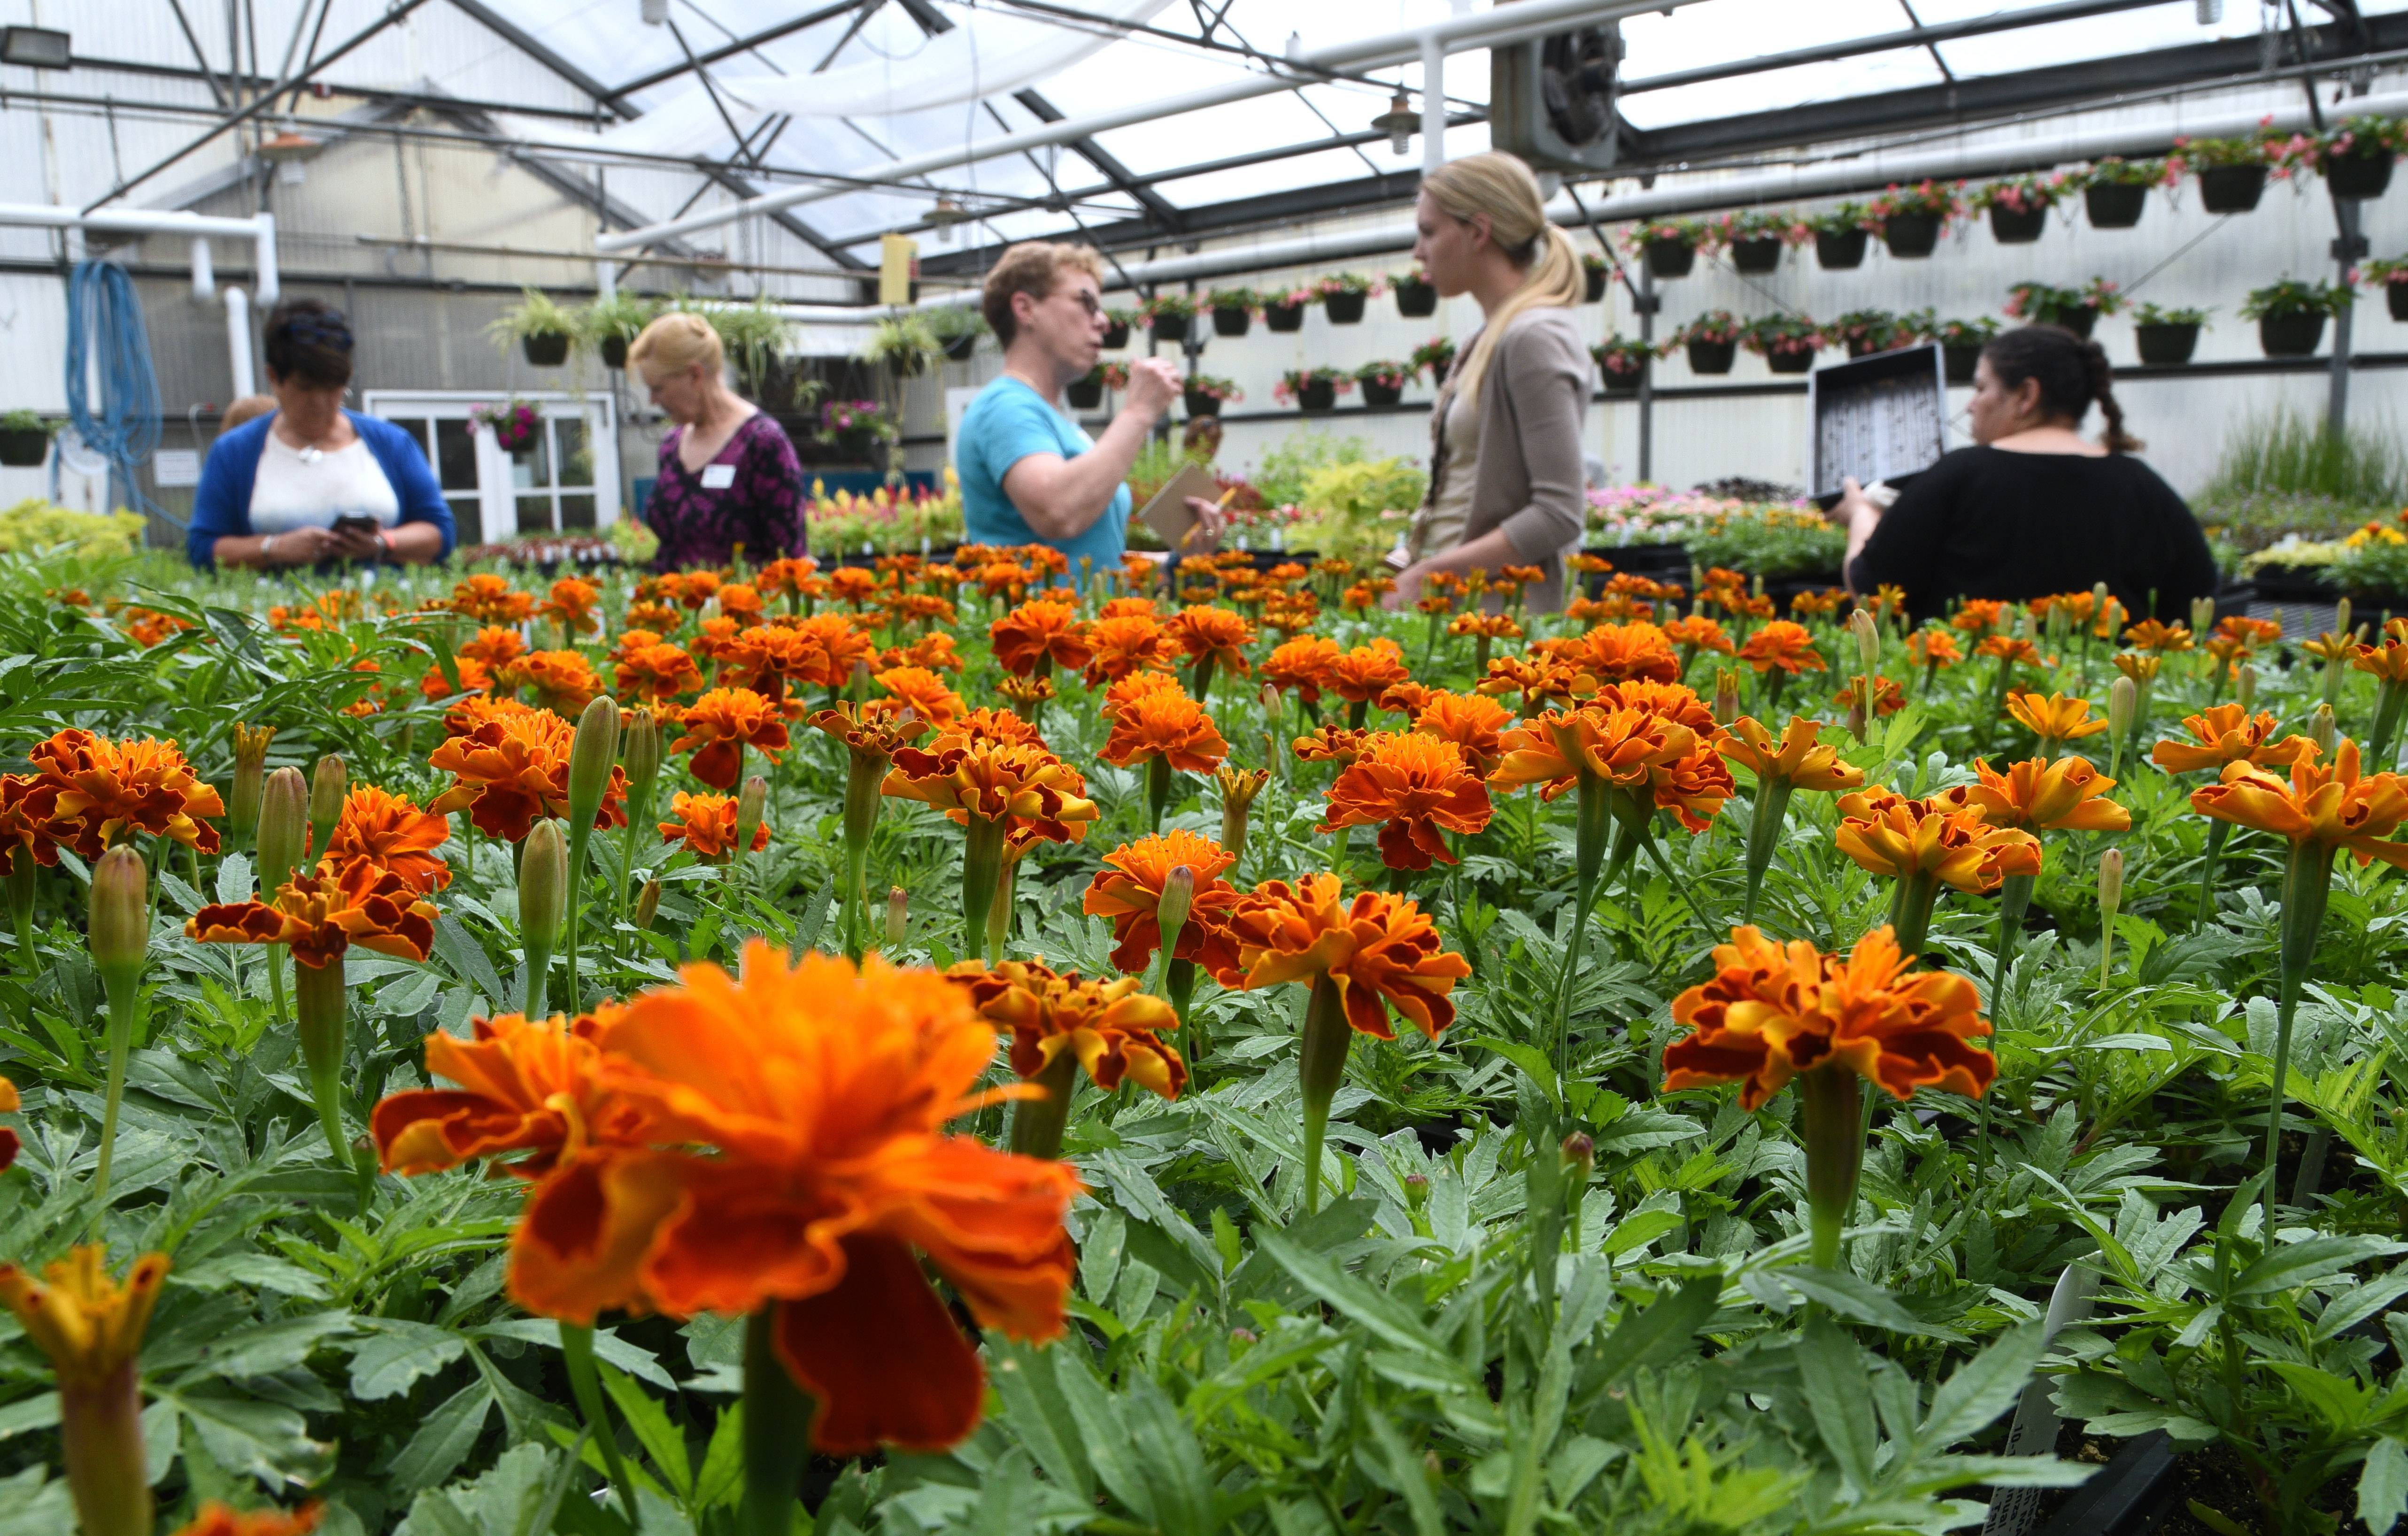 A large selection of French marigolds were on hand at College of Lake County's 2018 Horticulture Plant Sale held at the college's greenhouse at the Grayslake campus. Master gardener and sale volunteer Mary Zorc, center, helps shoppers at the sale. This year's sale takes place May 9-10.